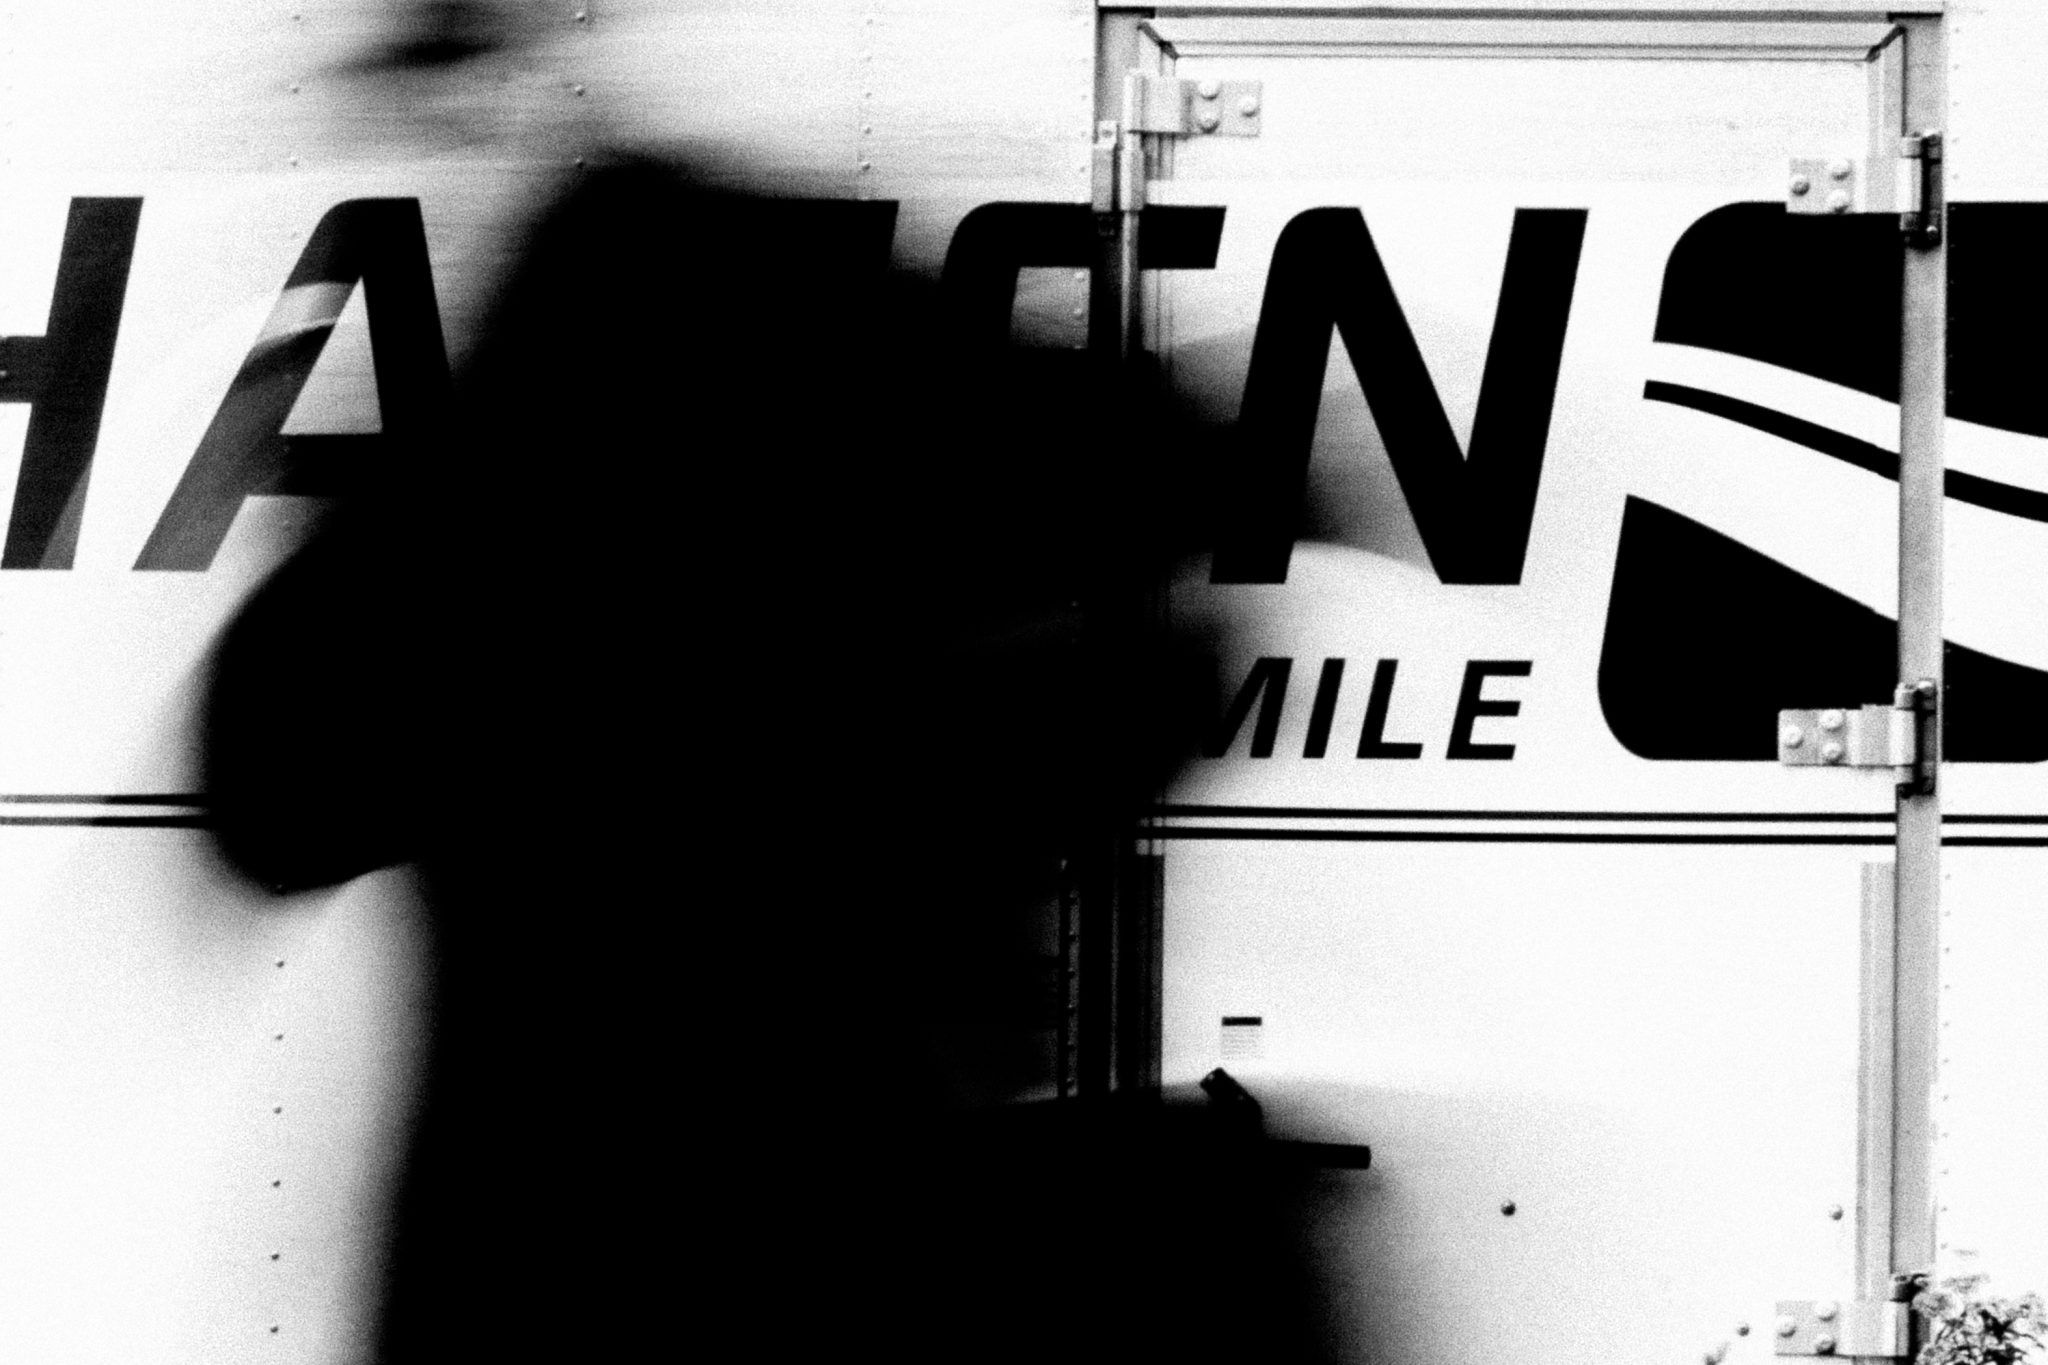 A blurred woman in front of a delivery truck shot by Jay Sennett with a Canon 60D while pulling focus.